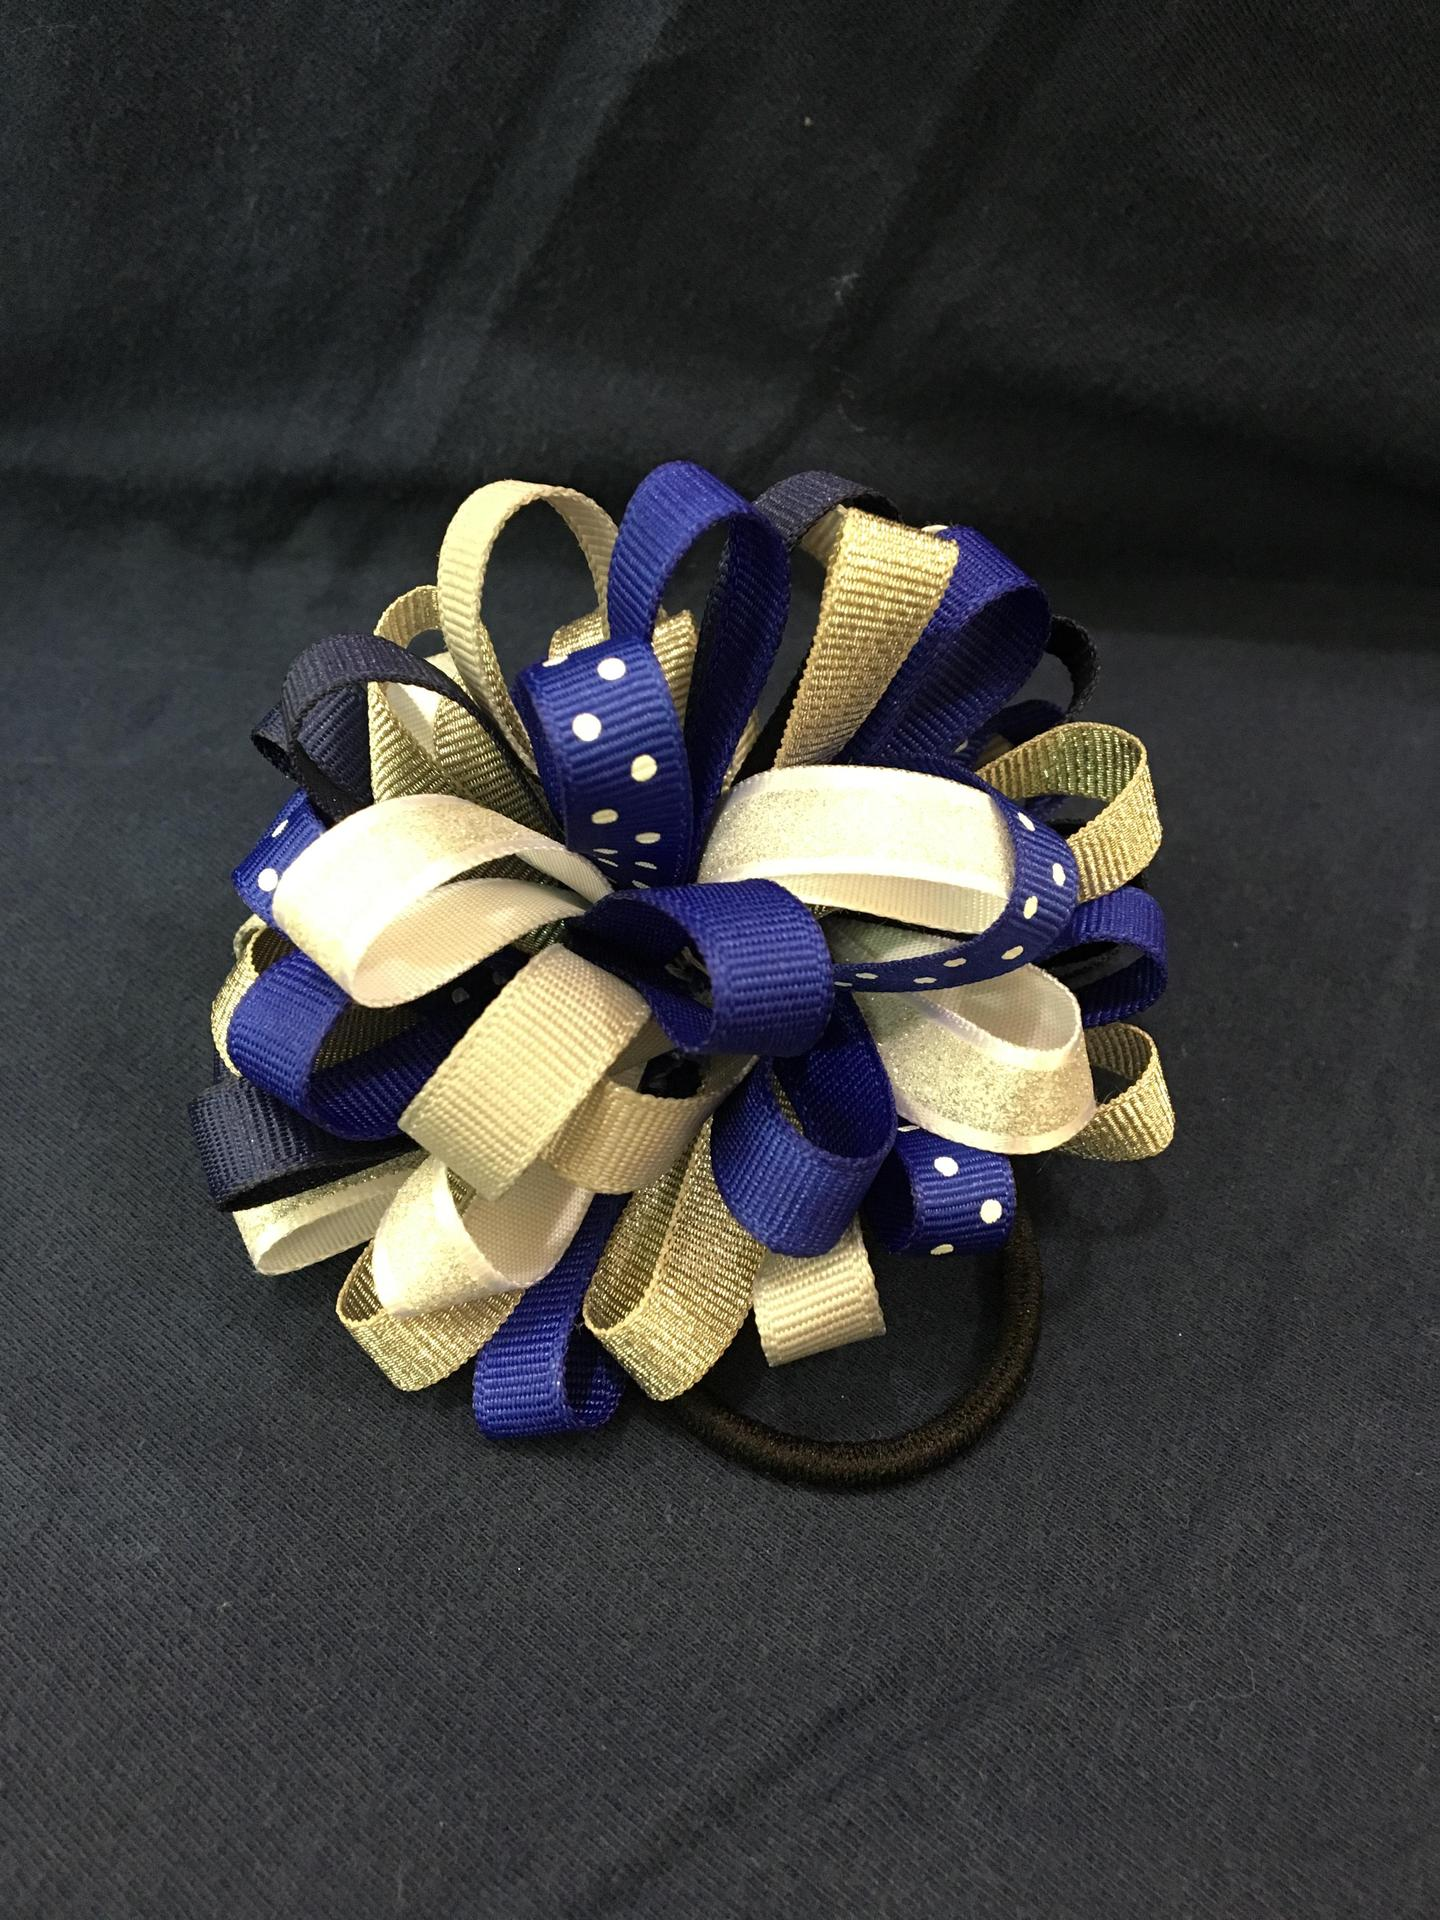 Blue & White Pom Pom Elastic Hair Tie